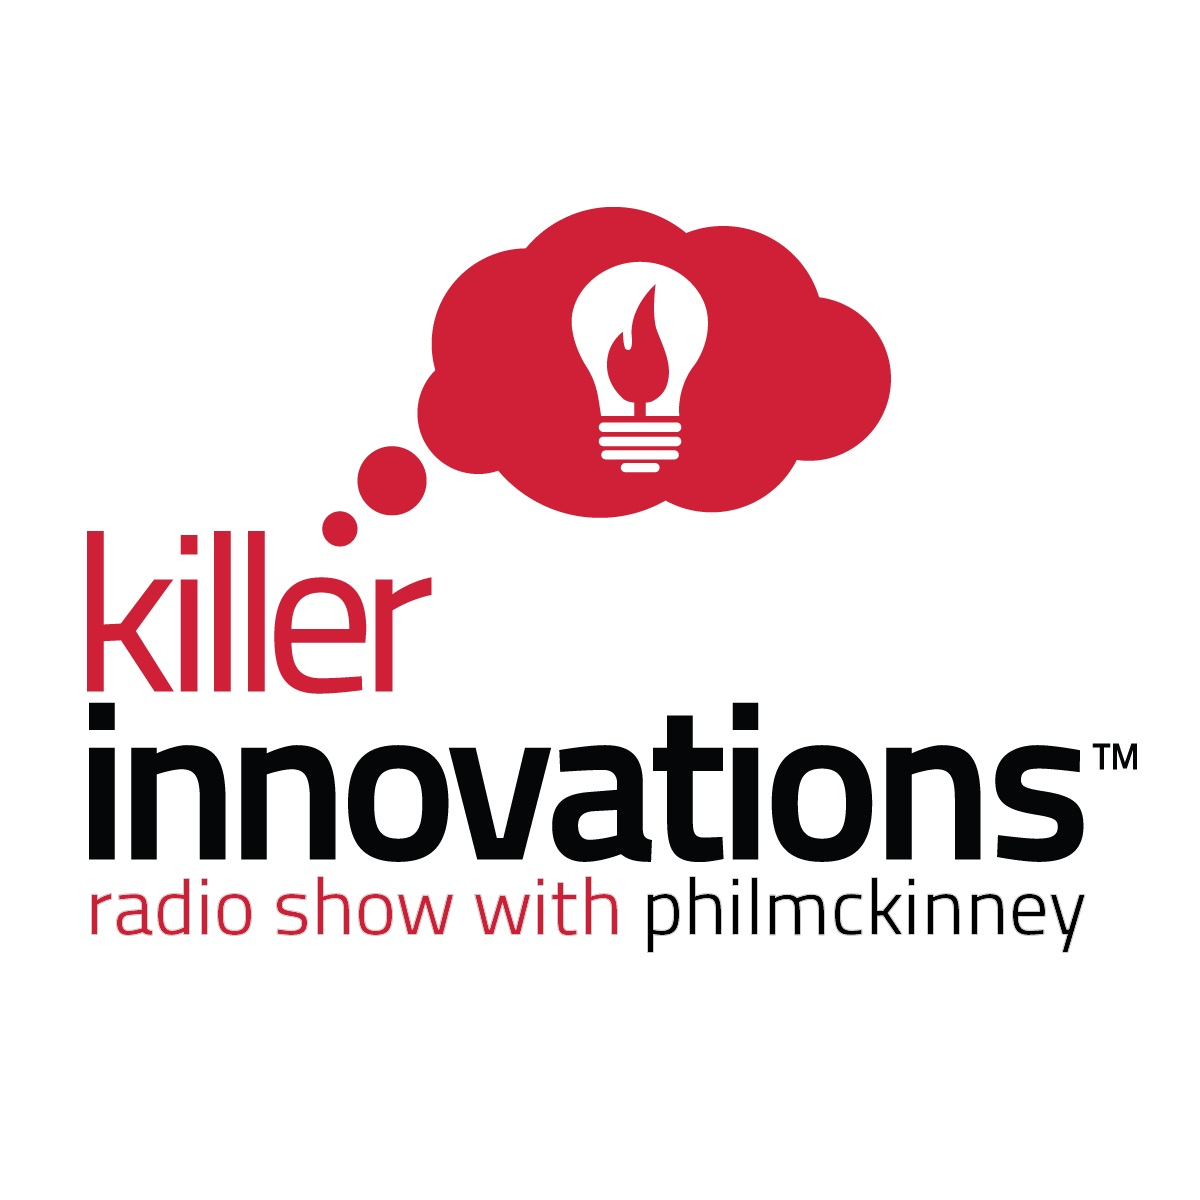 Killer Innovations Radio Show with Phil McKinney